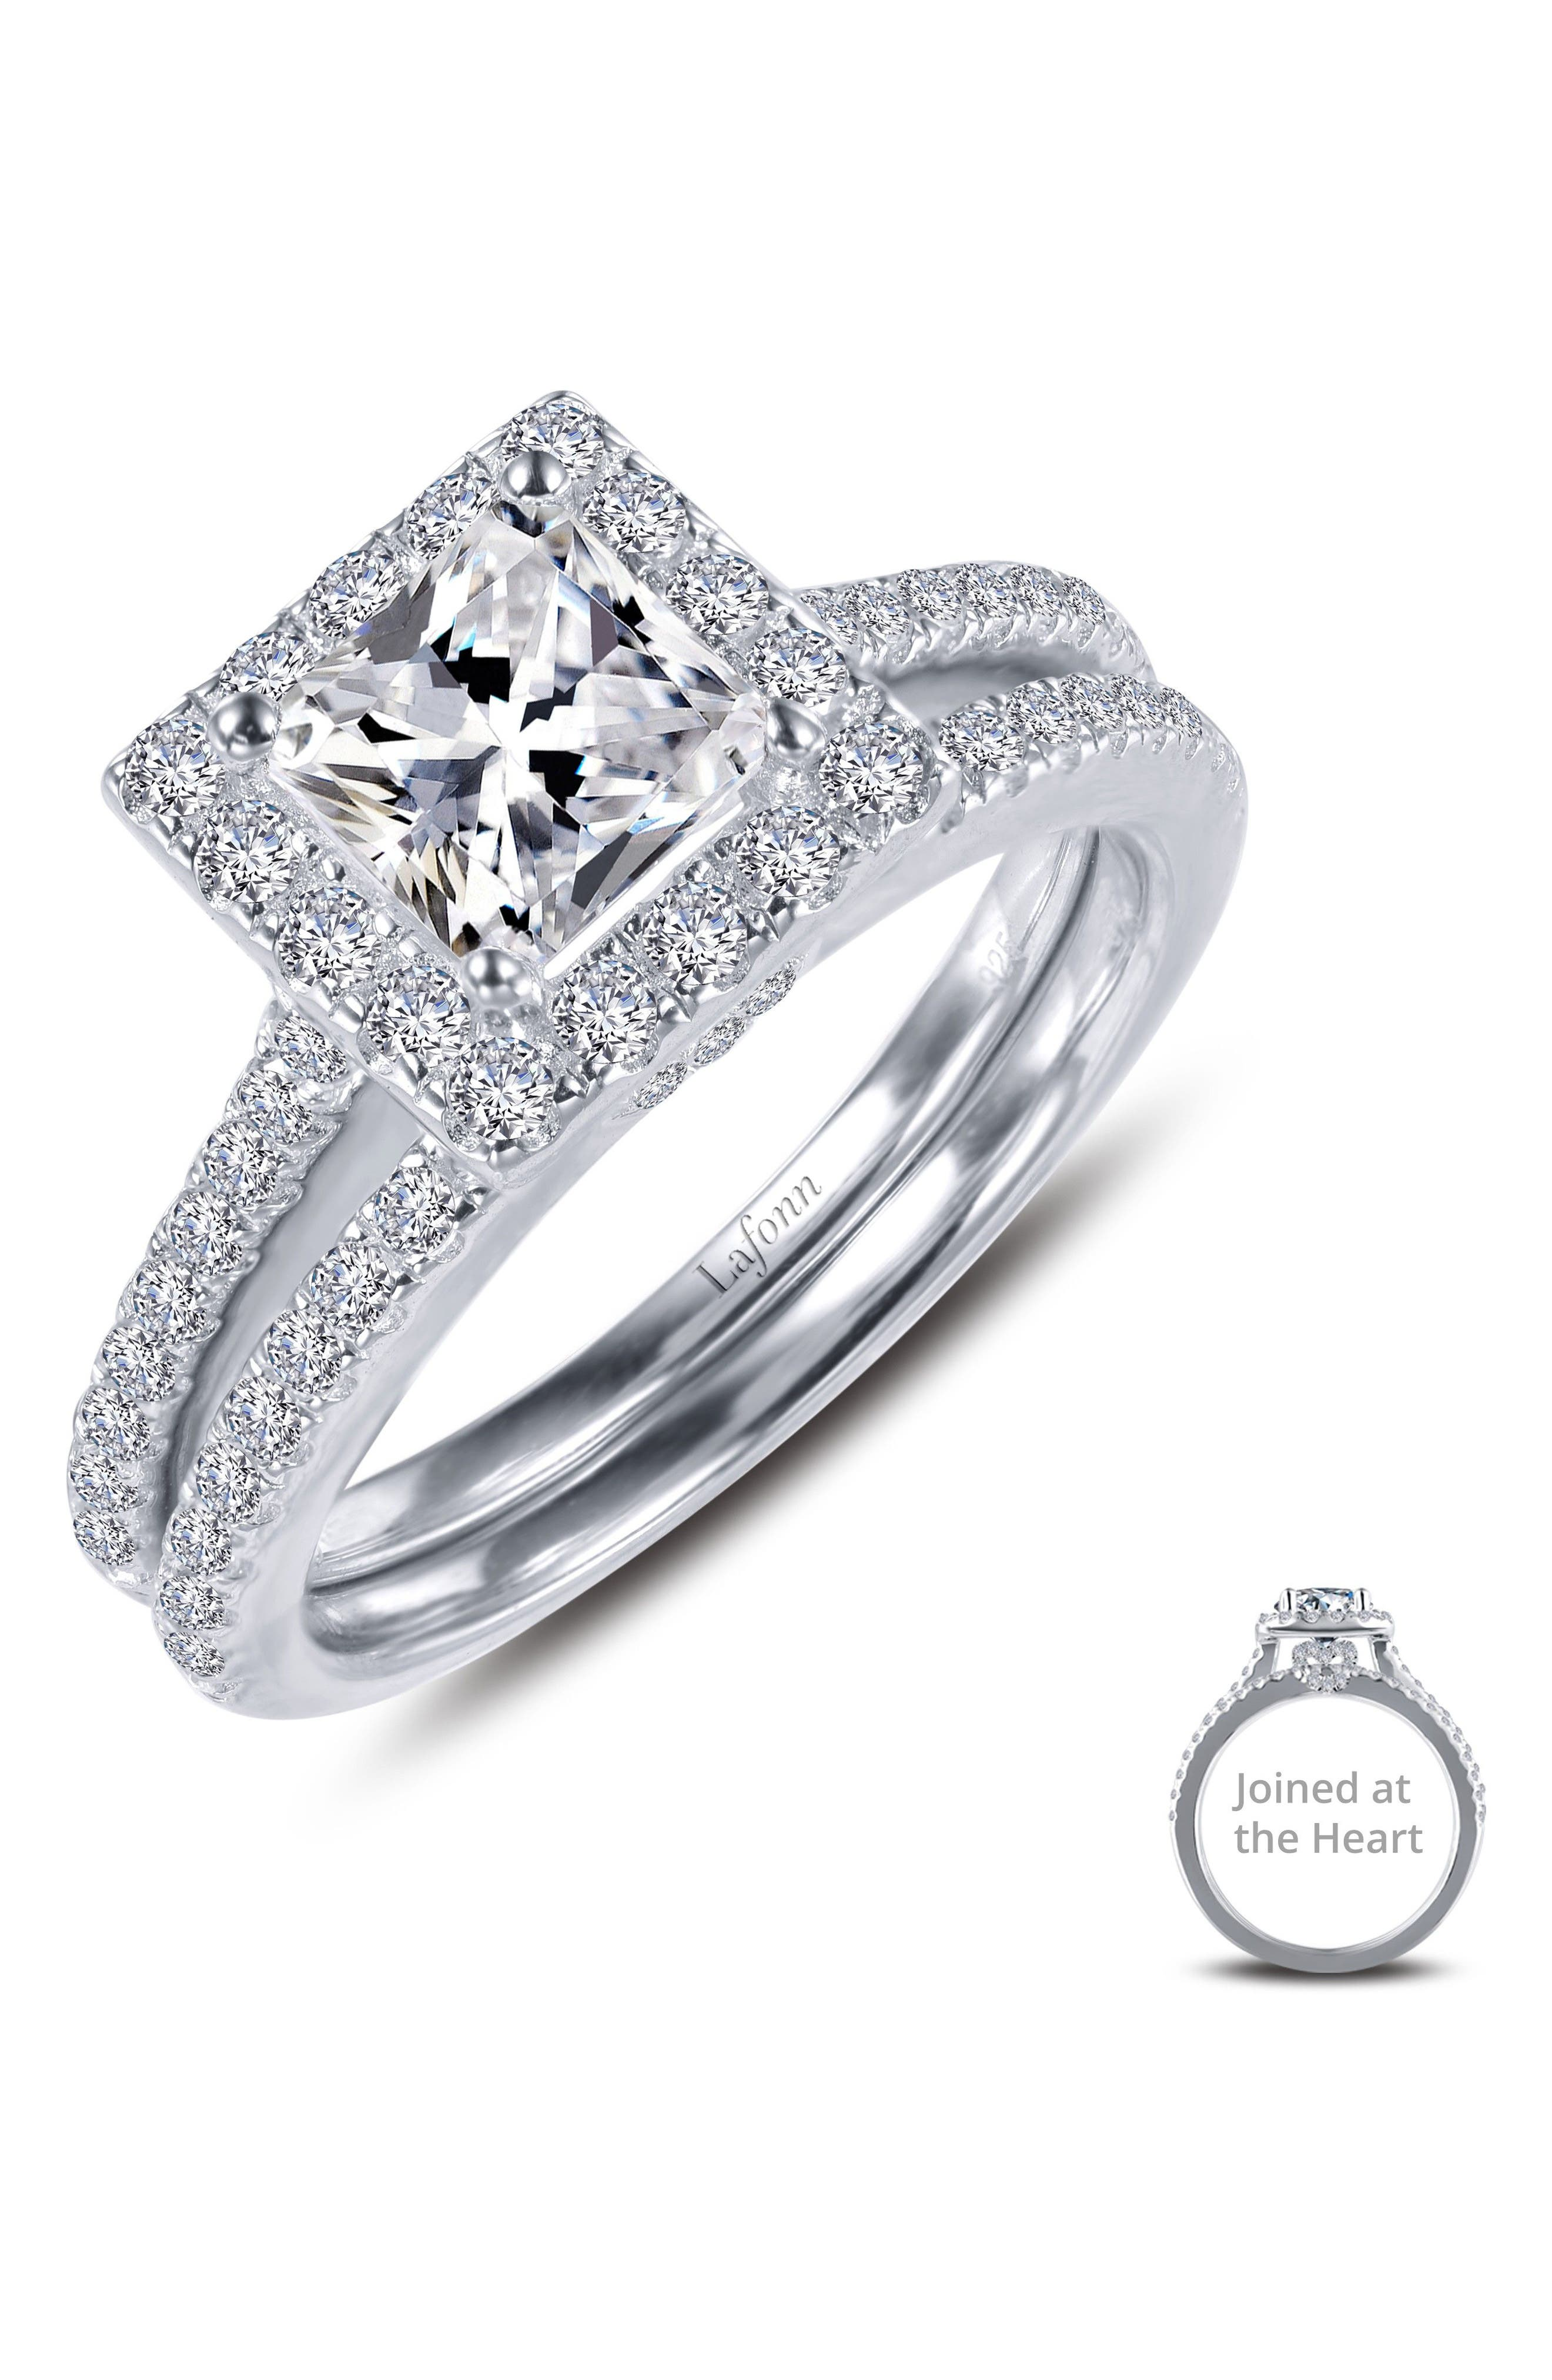 Joined at the Heart Cushion Cut Halo Wedding Ring Set,                             Alternate thumbnail 3, color,                             SILVER/ CLEAR